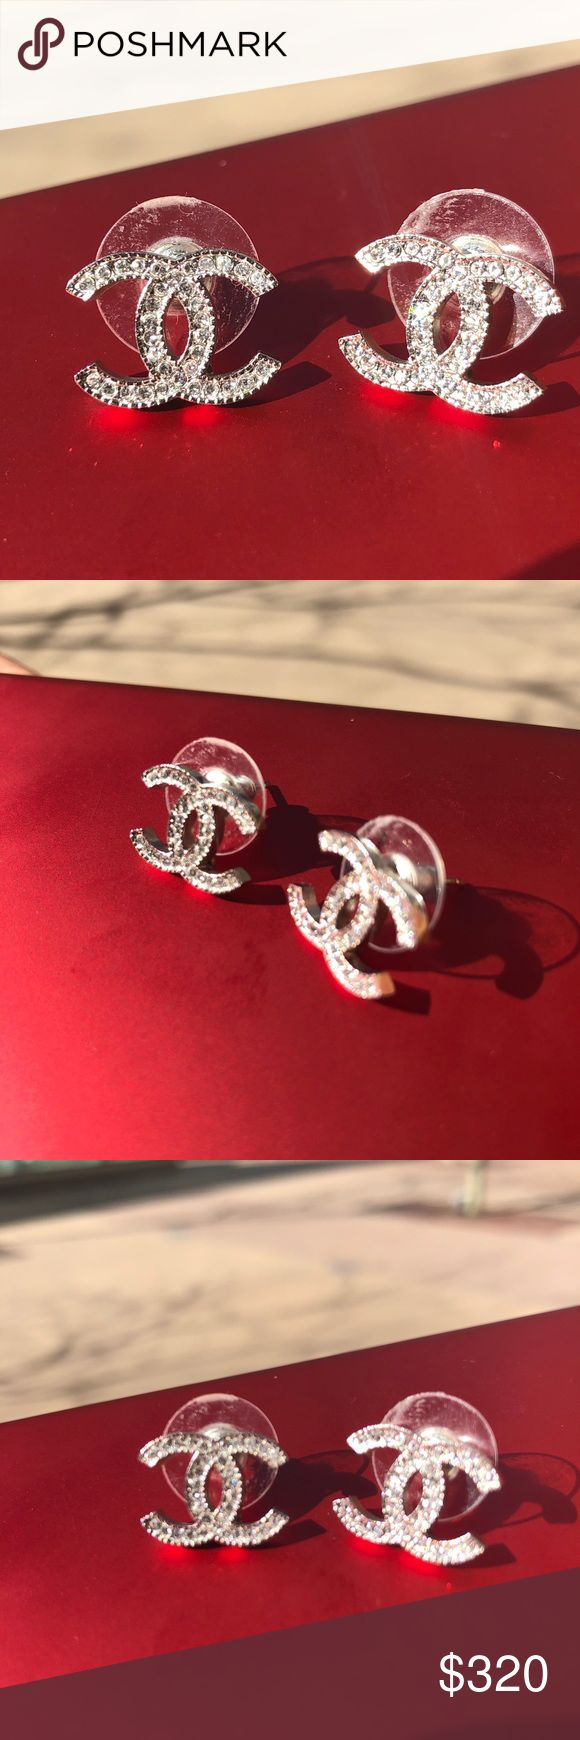 Chanel earrings Don't like it anymore. But I admit it is beautiful. Bought it in 2015 CHANEL Jewelry Earrings